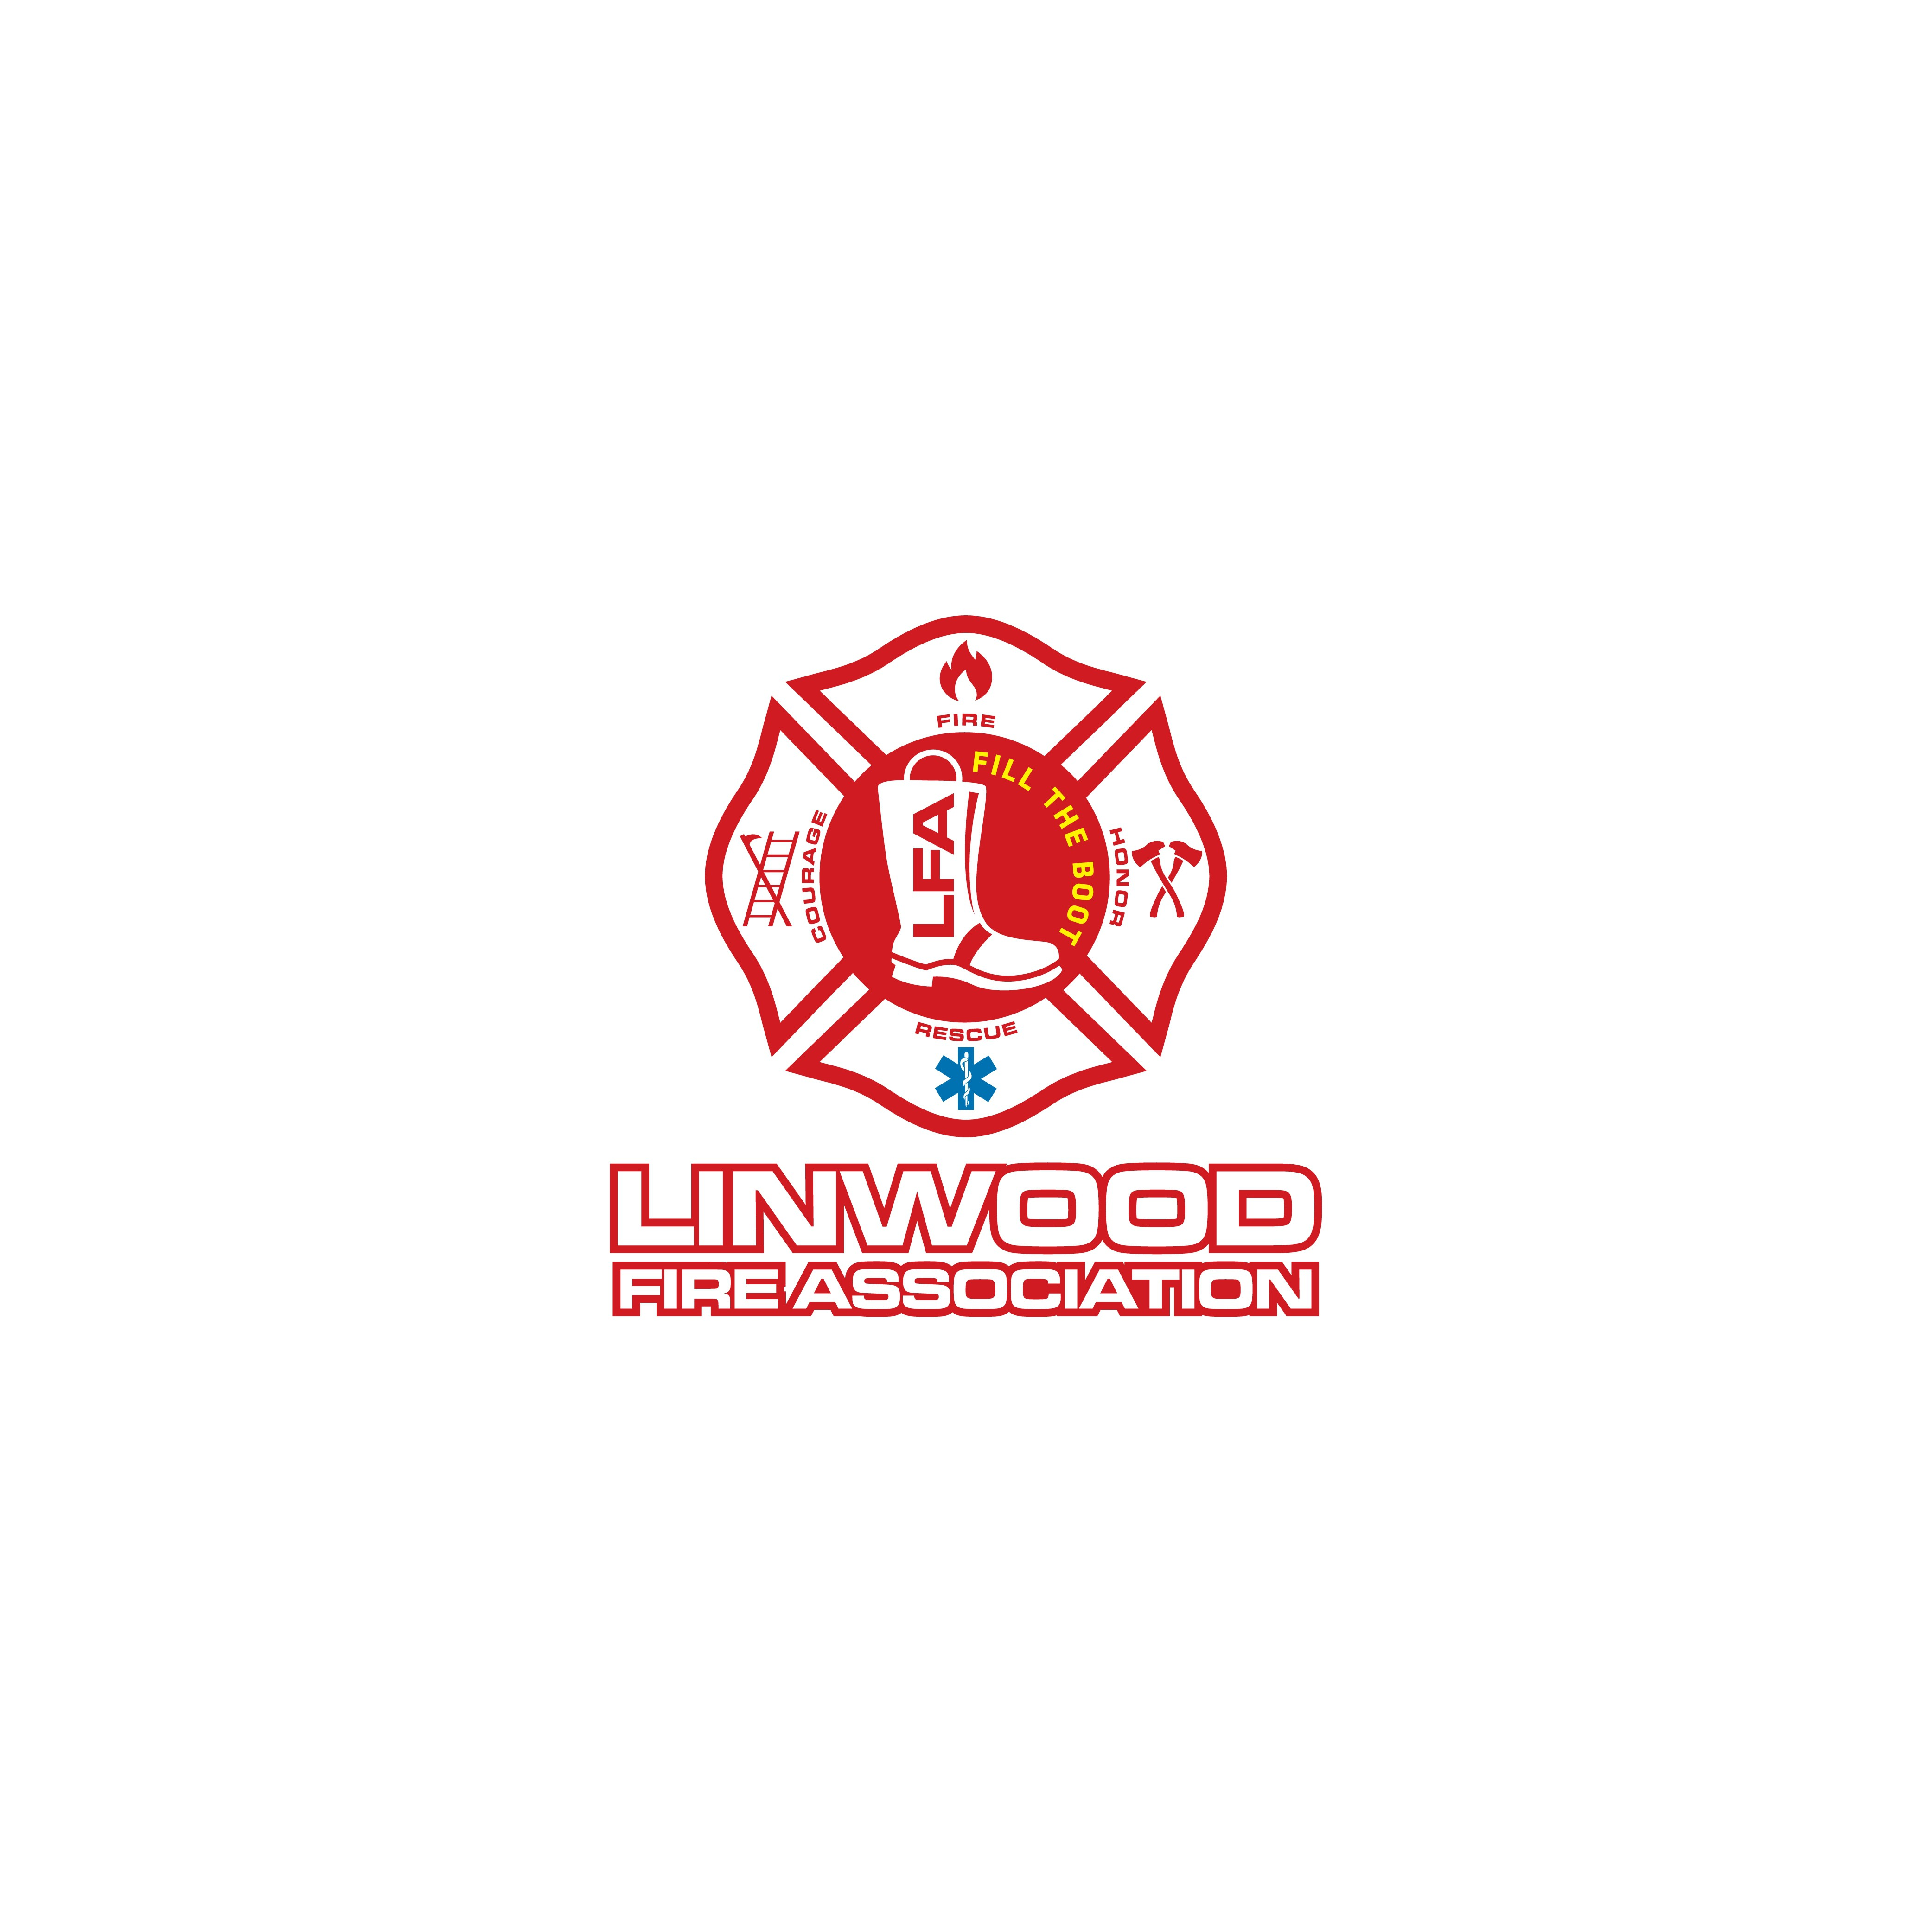 """FIRE-D Up to help the Linwood Fire Department"